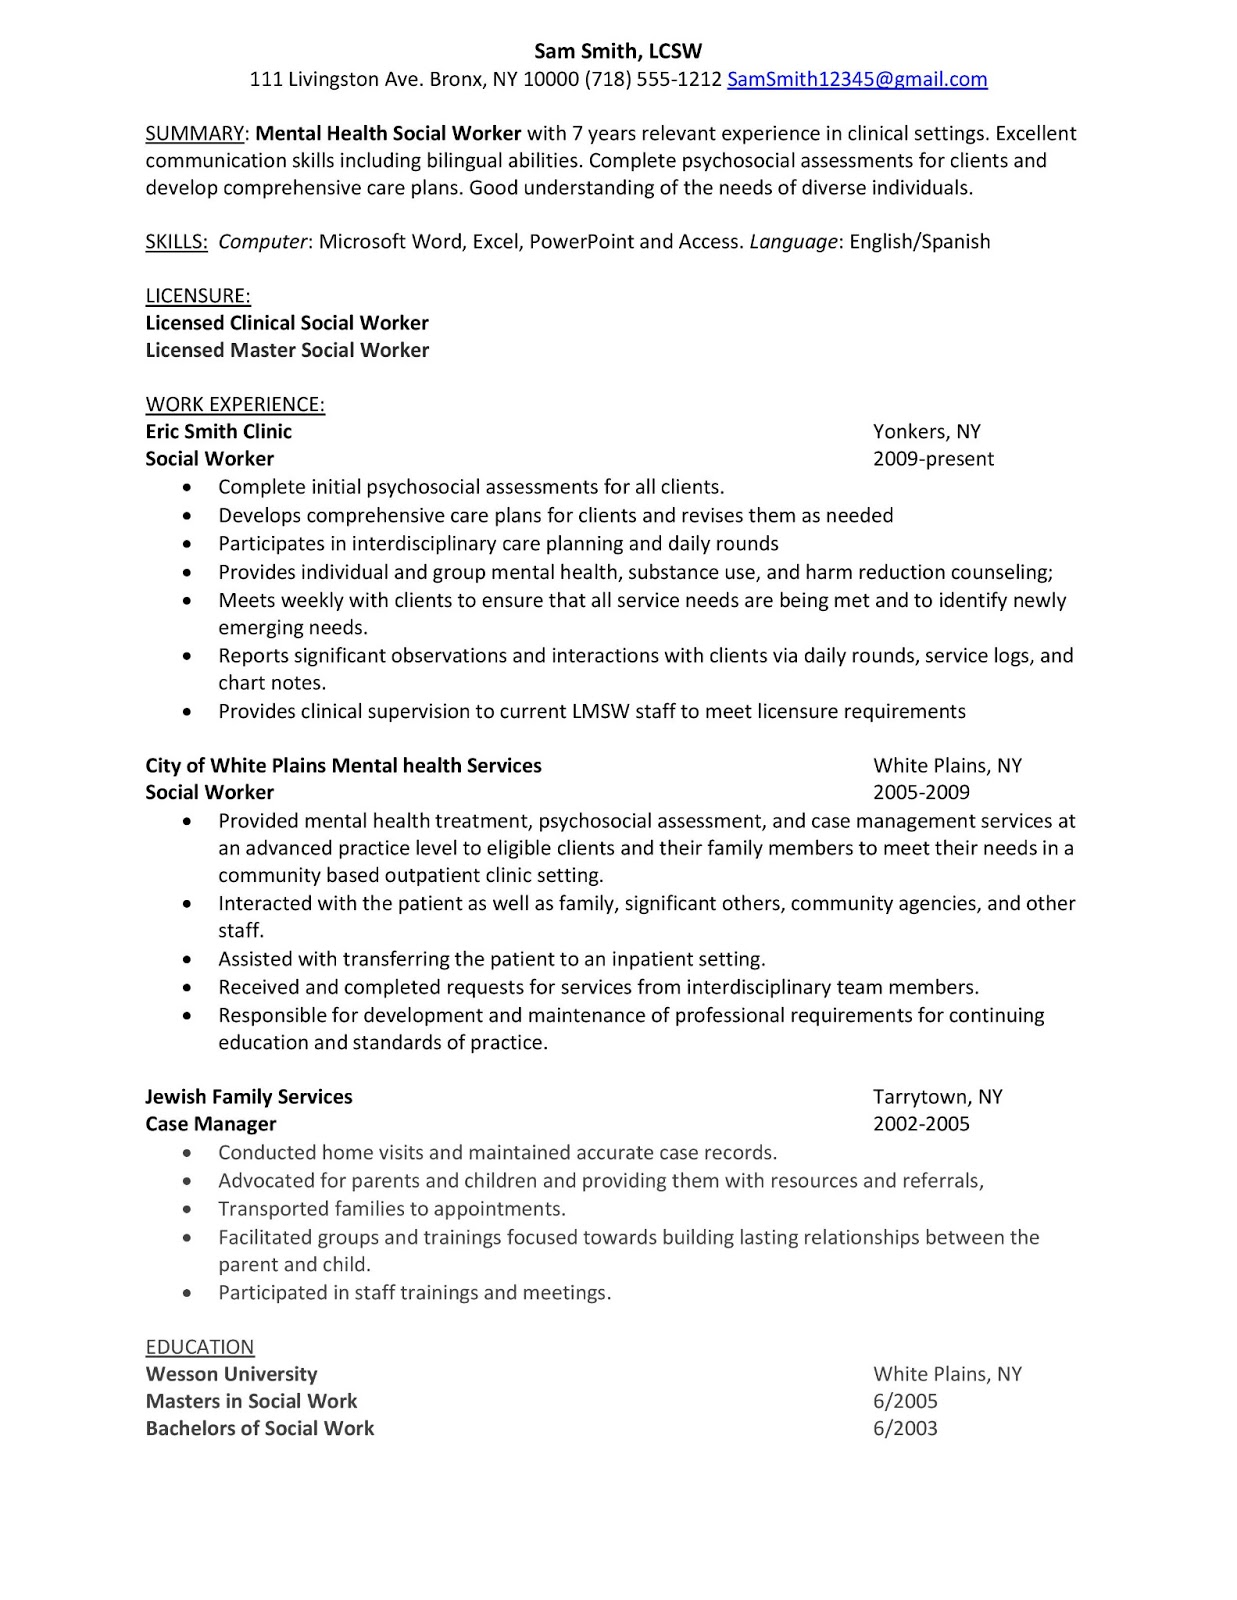 resume Lcsw Resume Sample sample resume mental health social worker winning answers to worker